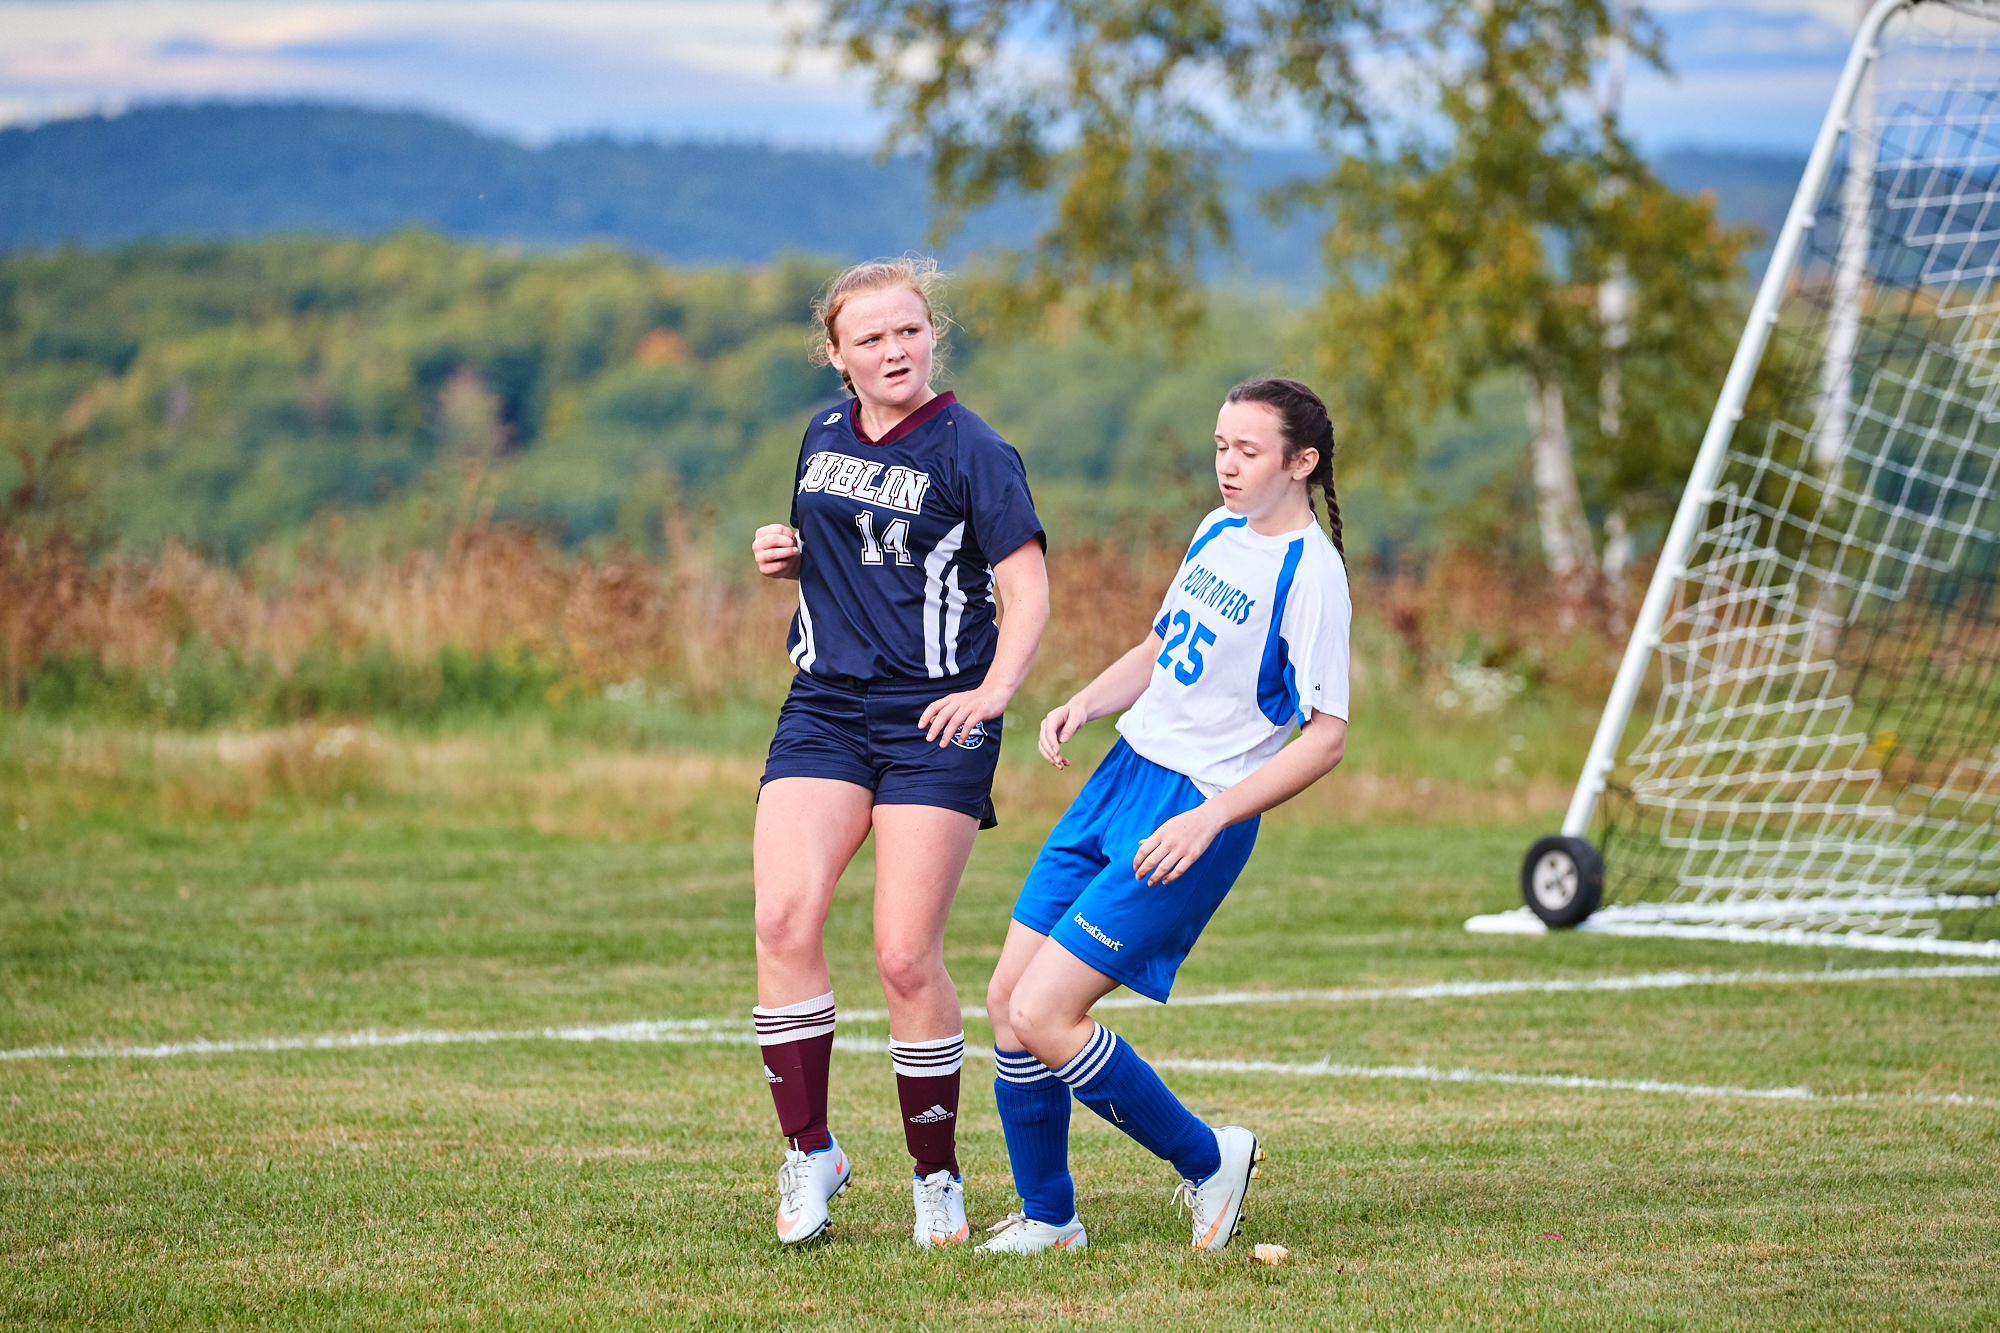 Girls Varsity Soccer vs. Four Rivers Charter Public School - September 23, 2016 - 41934- 000167.jpg